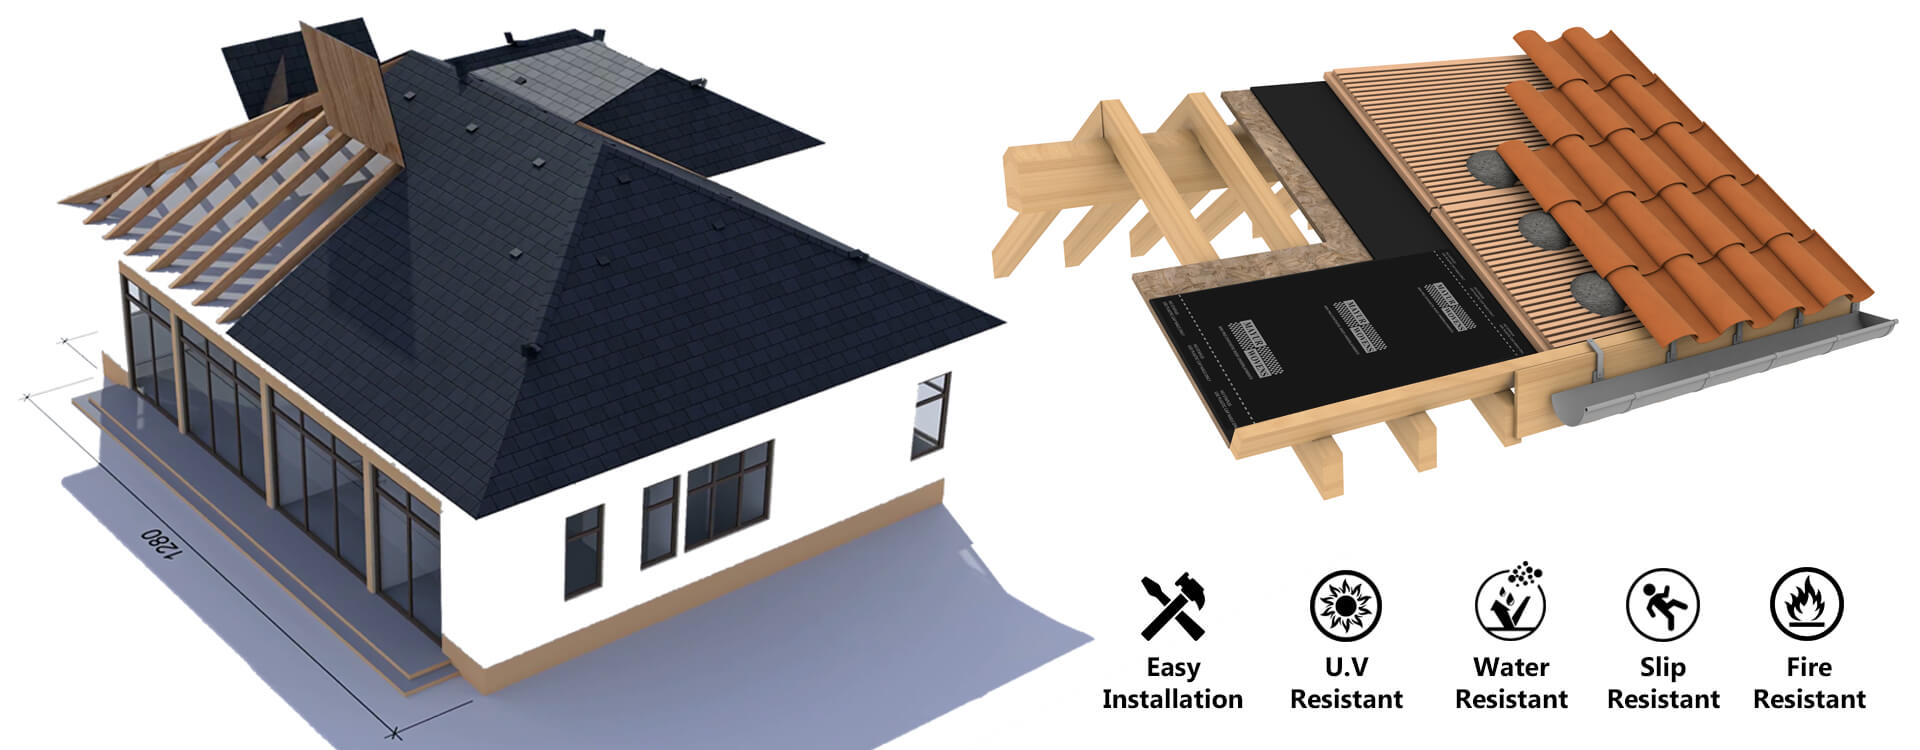 U.V Resistant Synthetic Roof Underlayment